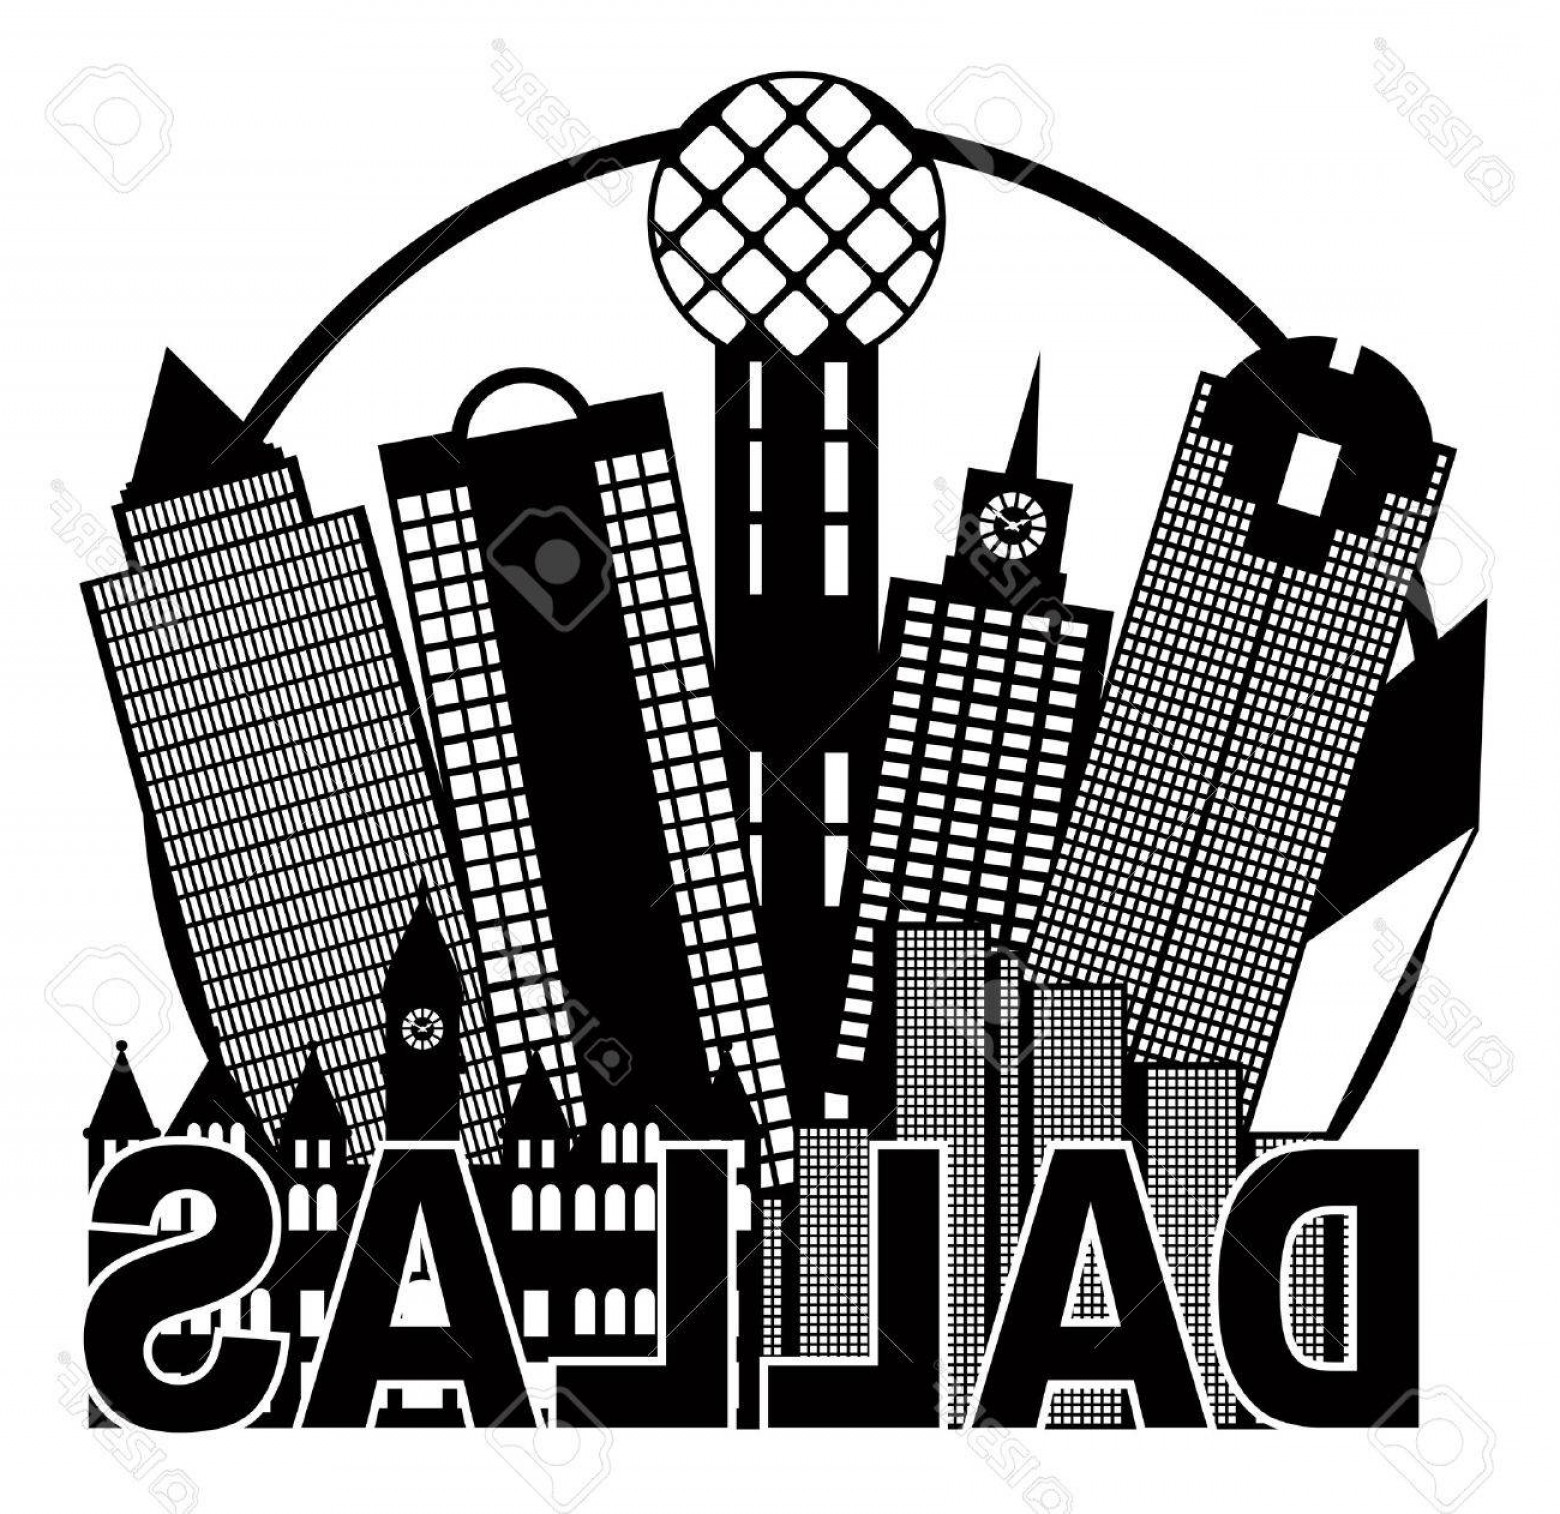 Texas Vector Drawing: Photostock Vector Dallas Texas City Skyline Outline In Circle Black And White Silhouette Illustration